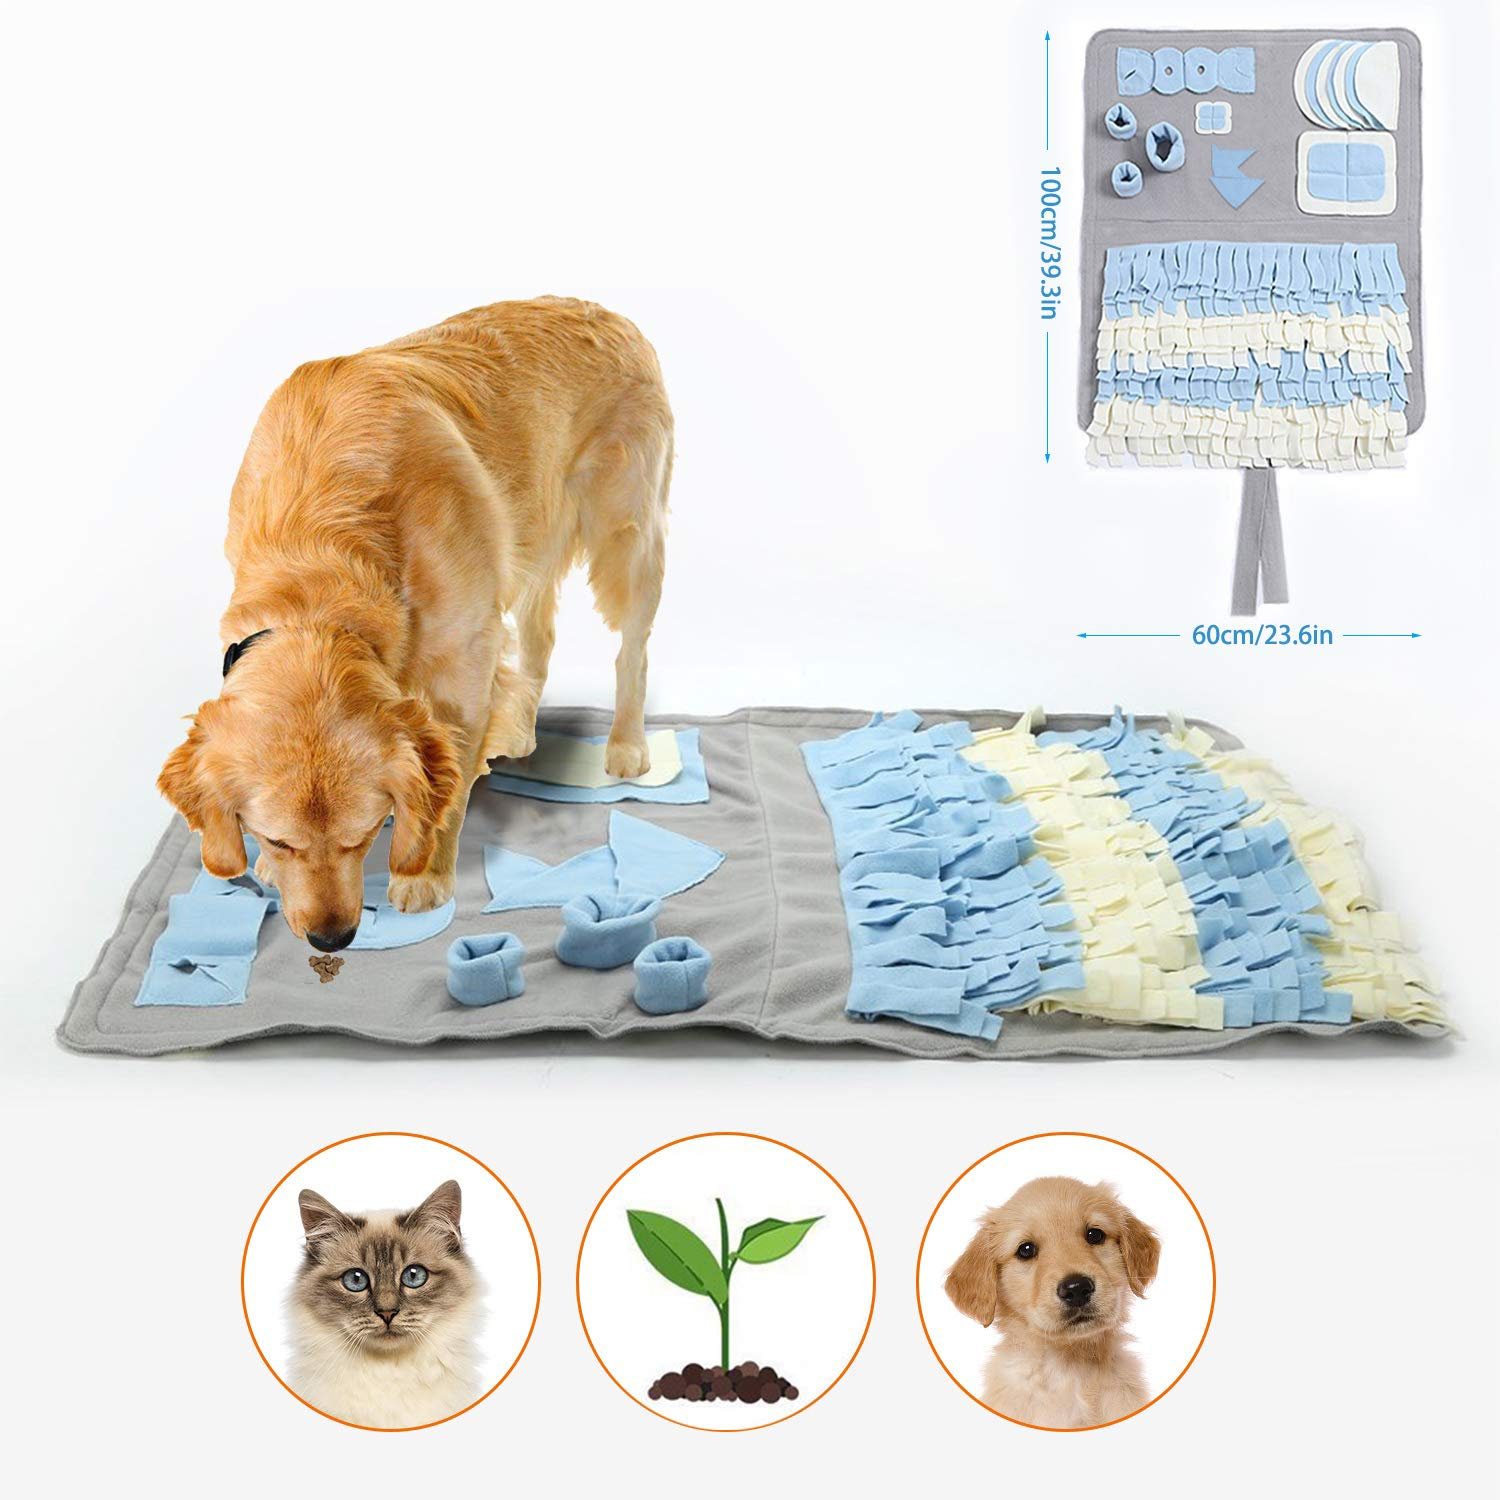 Snuffle Mat for Dogs Handmade Dog Training Mat Play Mat Dog Nosework Blanket Encourages Natural Foraging Skills (100x60cm) by GUSTYLE (Image #1)